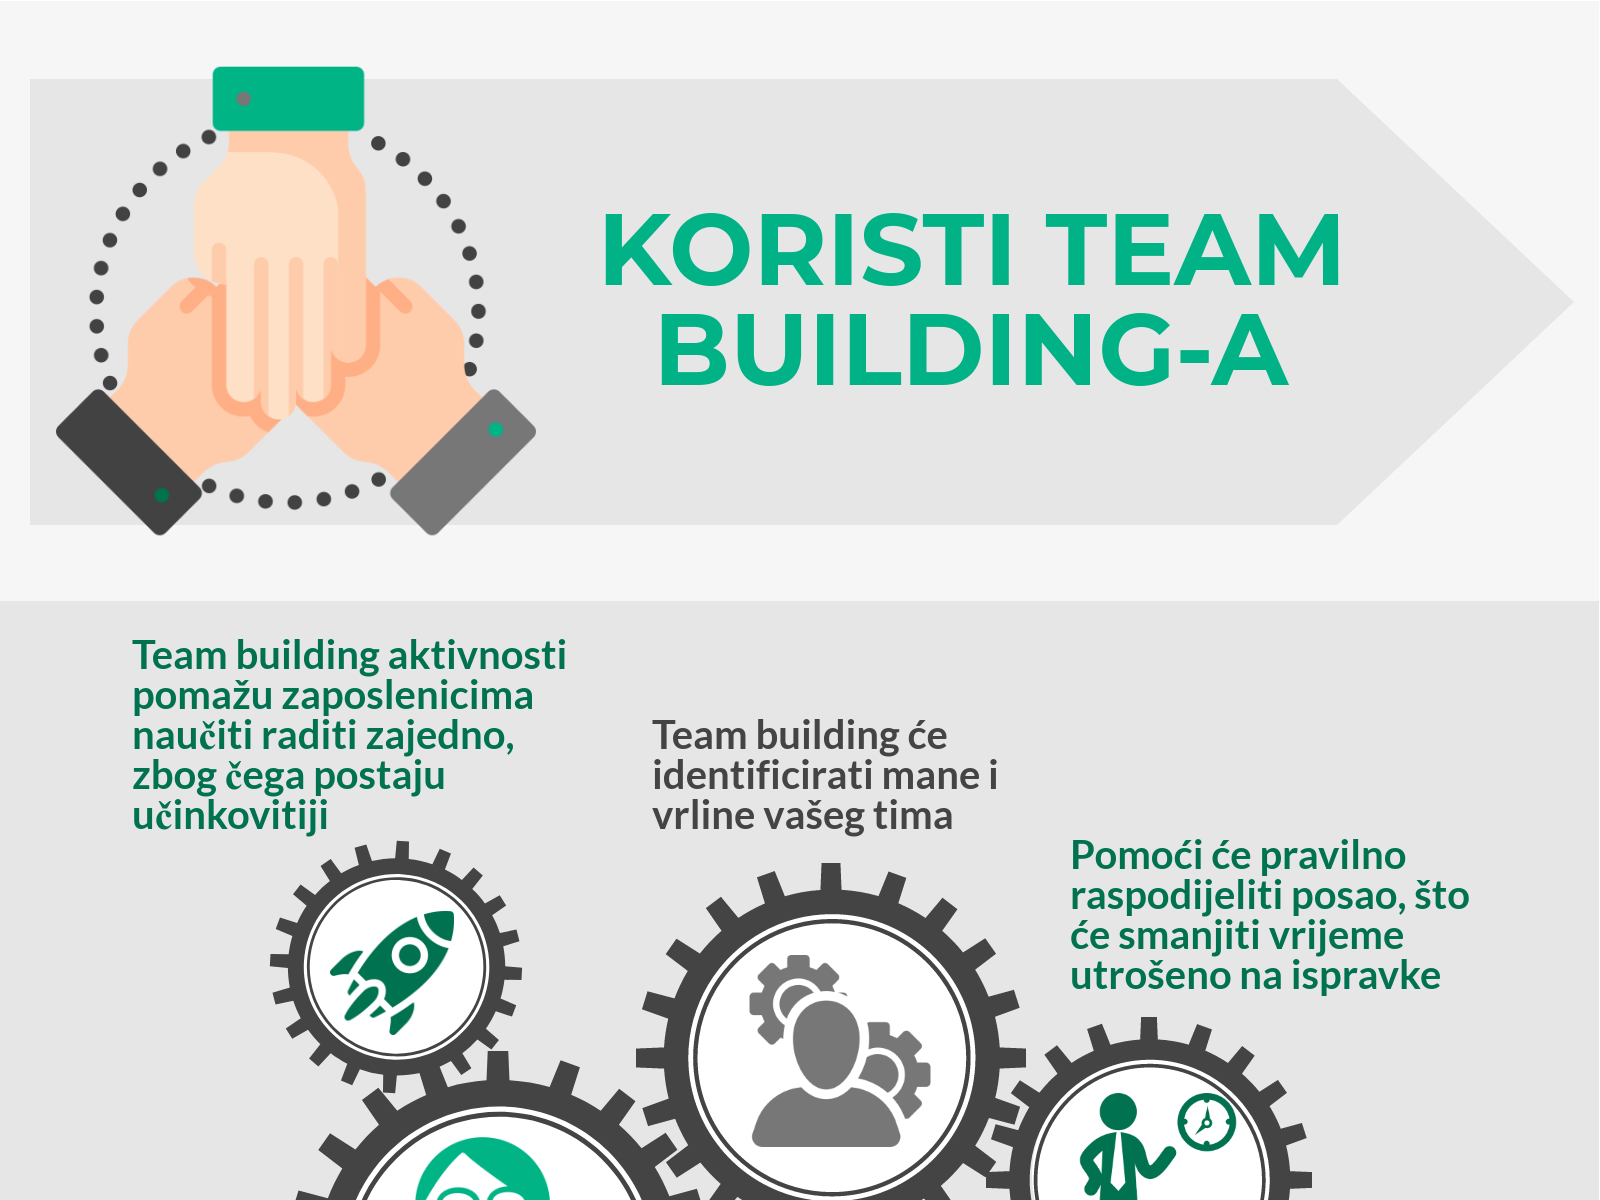 Gooma_koristi team building-a